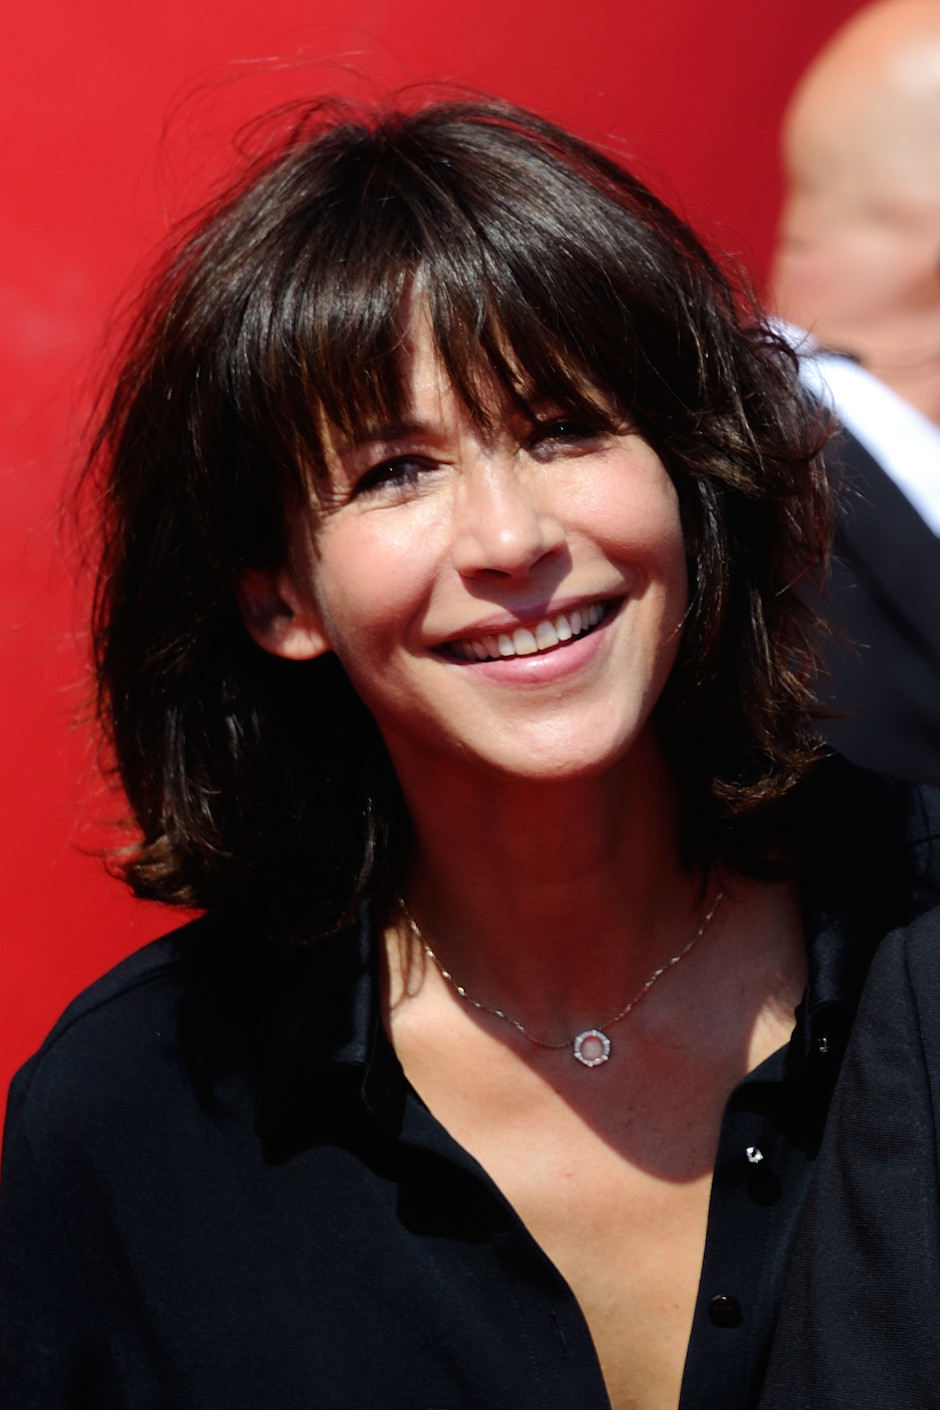 sophie marceau 10 stars n es sous le signe du scorpion elle. Black Bedroom Furniture Sets. Home Design Ideas